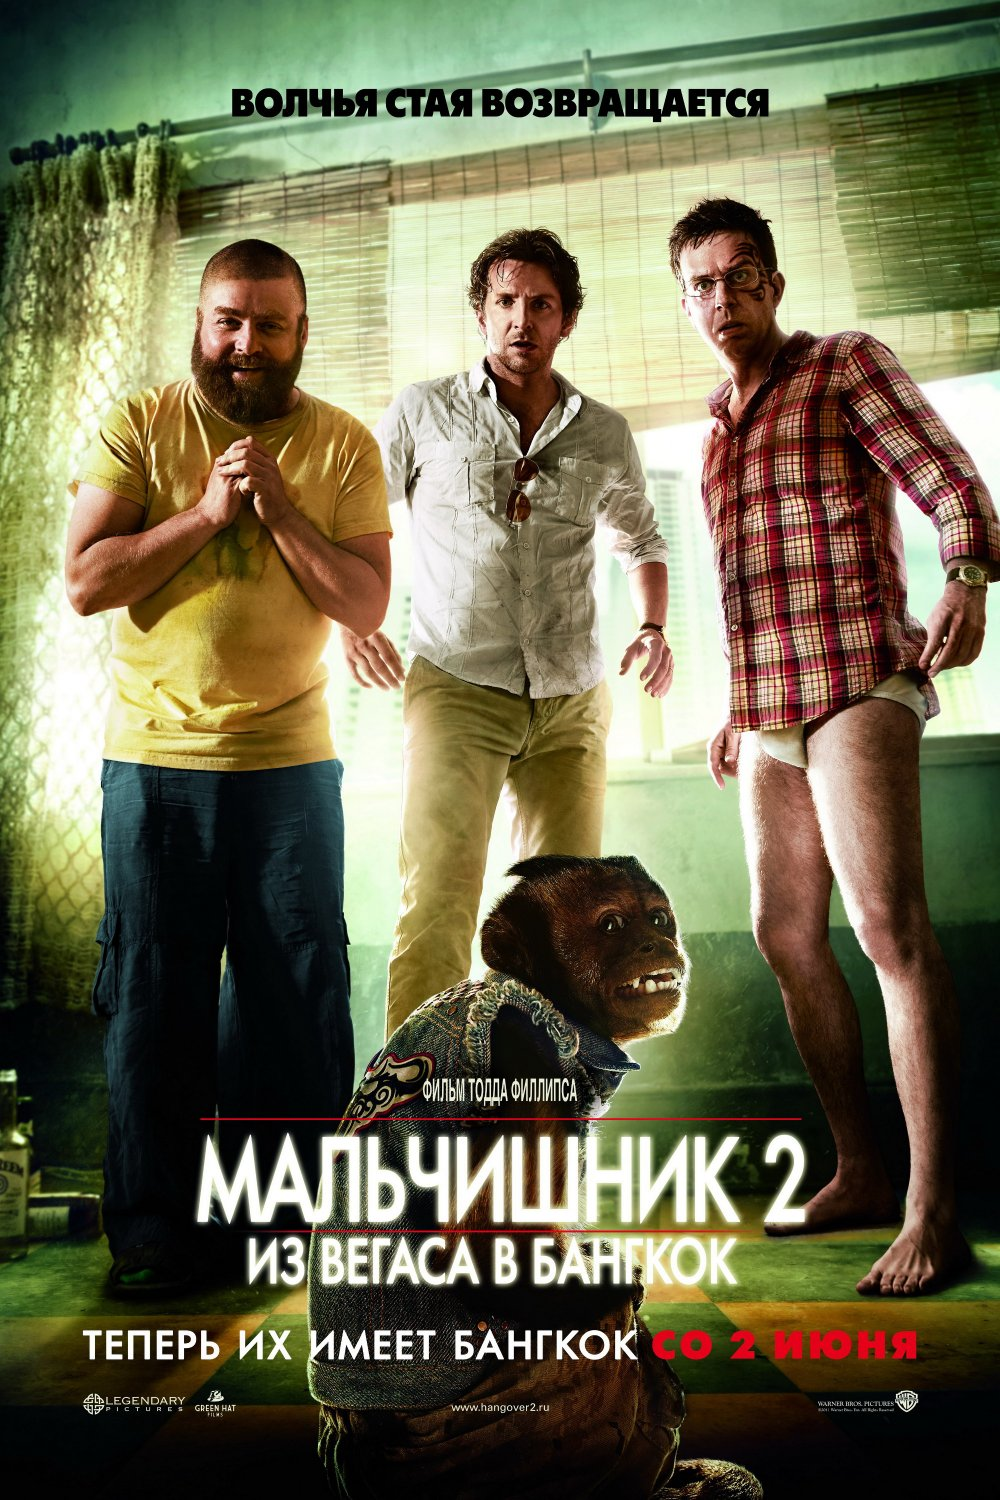 The Hangover Part 2 International Poster